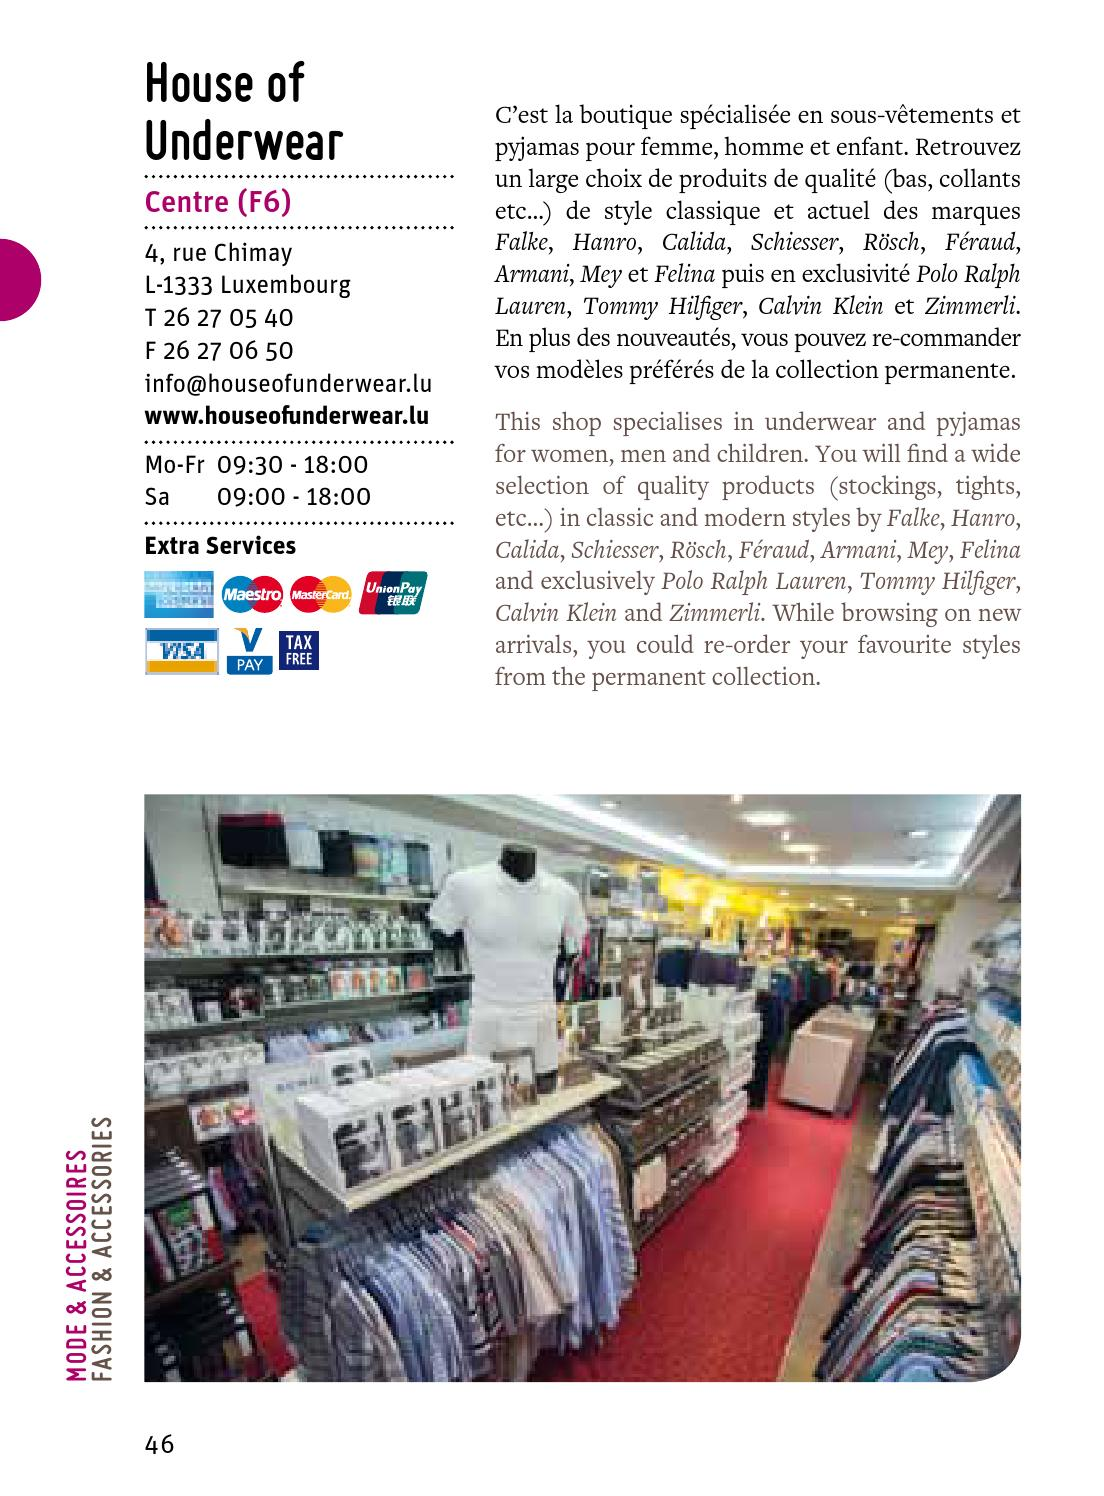 City By Issuu Guide Cityshopping Shopping Luxembourg 9Y2EIeWDH